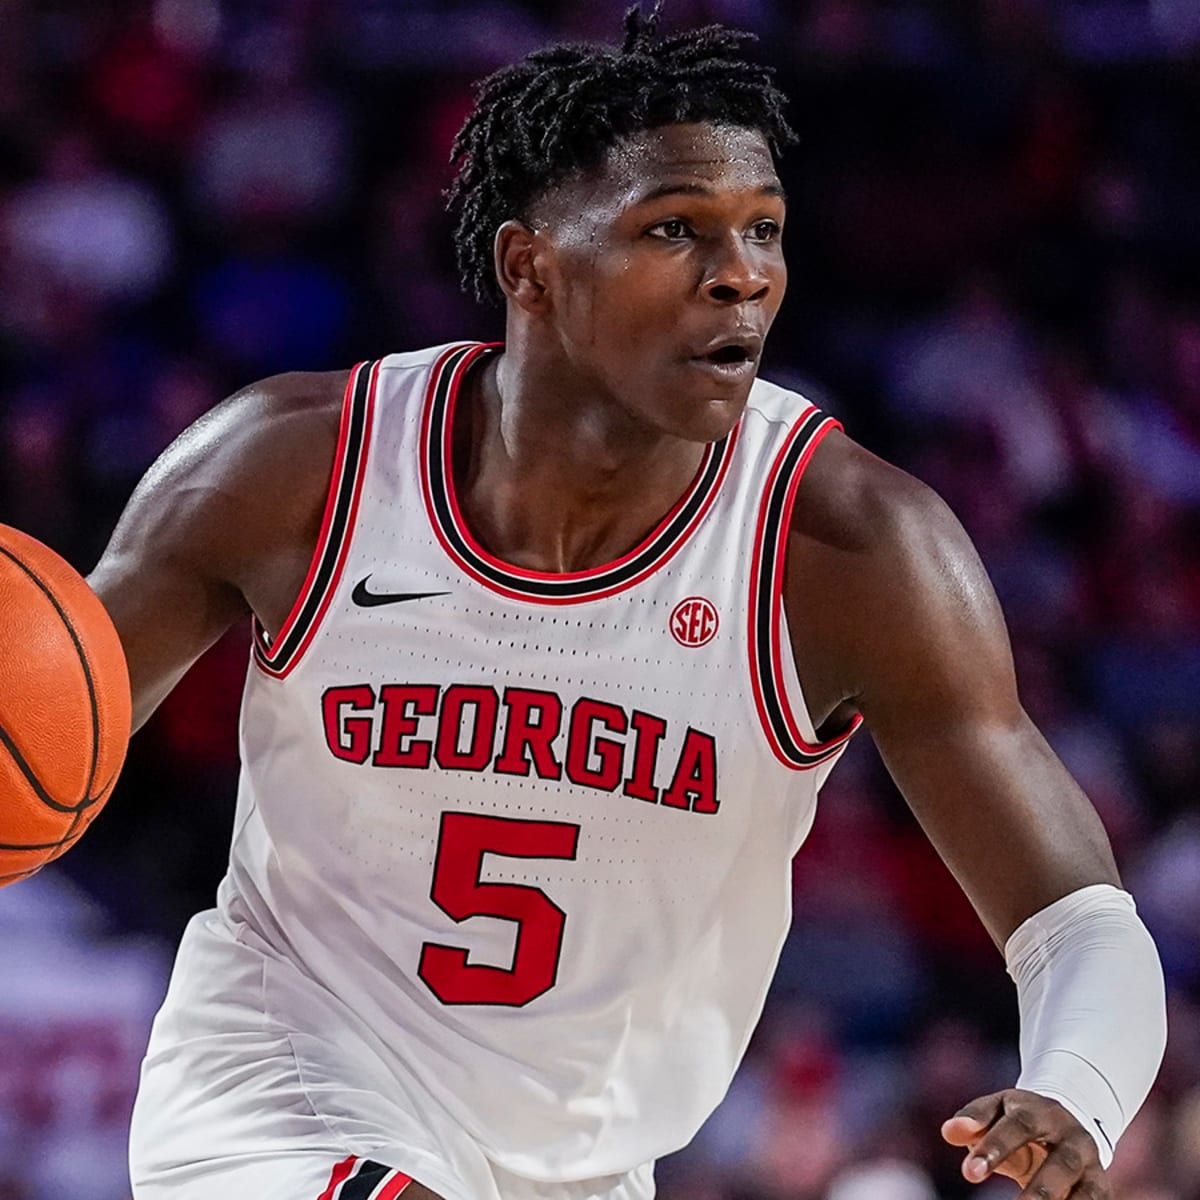 2020 Nba Draft Anthony Edwards Has A Strong Case To Be The First Pick Sports Illustrated